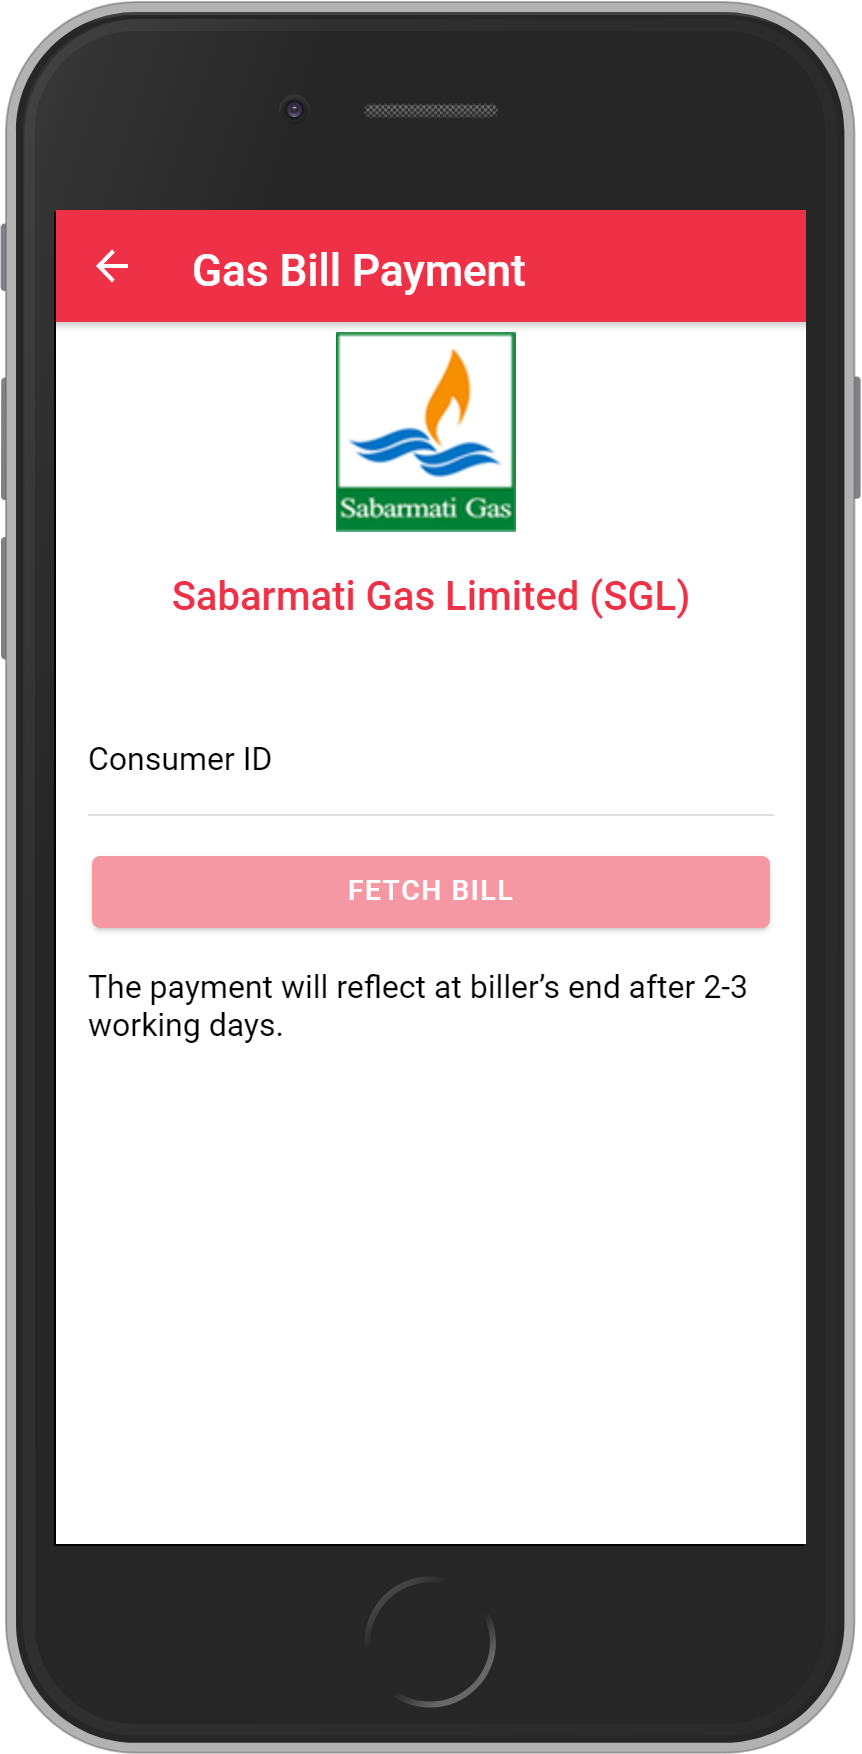 Get UNLIMITED <b>0.1%</b> CASHBACK on Sabarmati Gas Limited (SGL) Bill Payment.